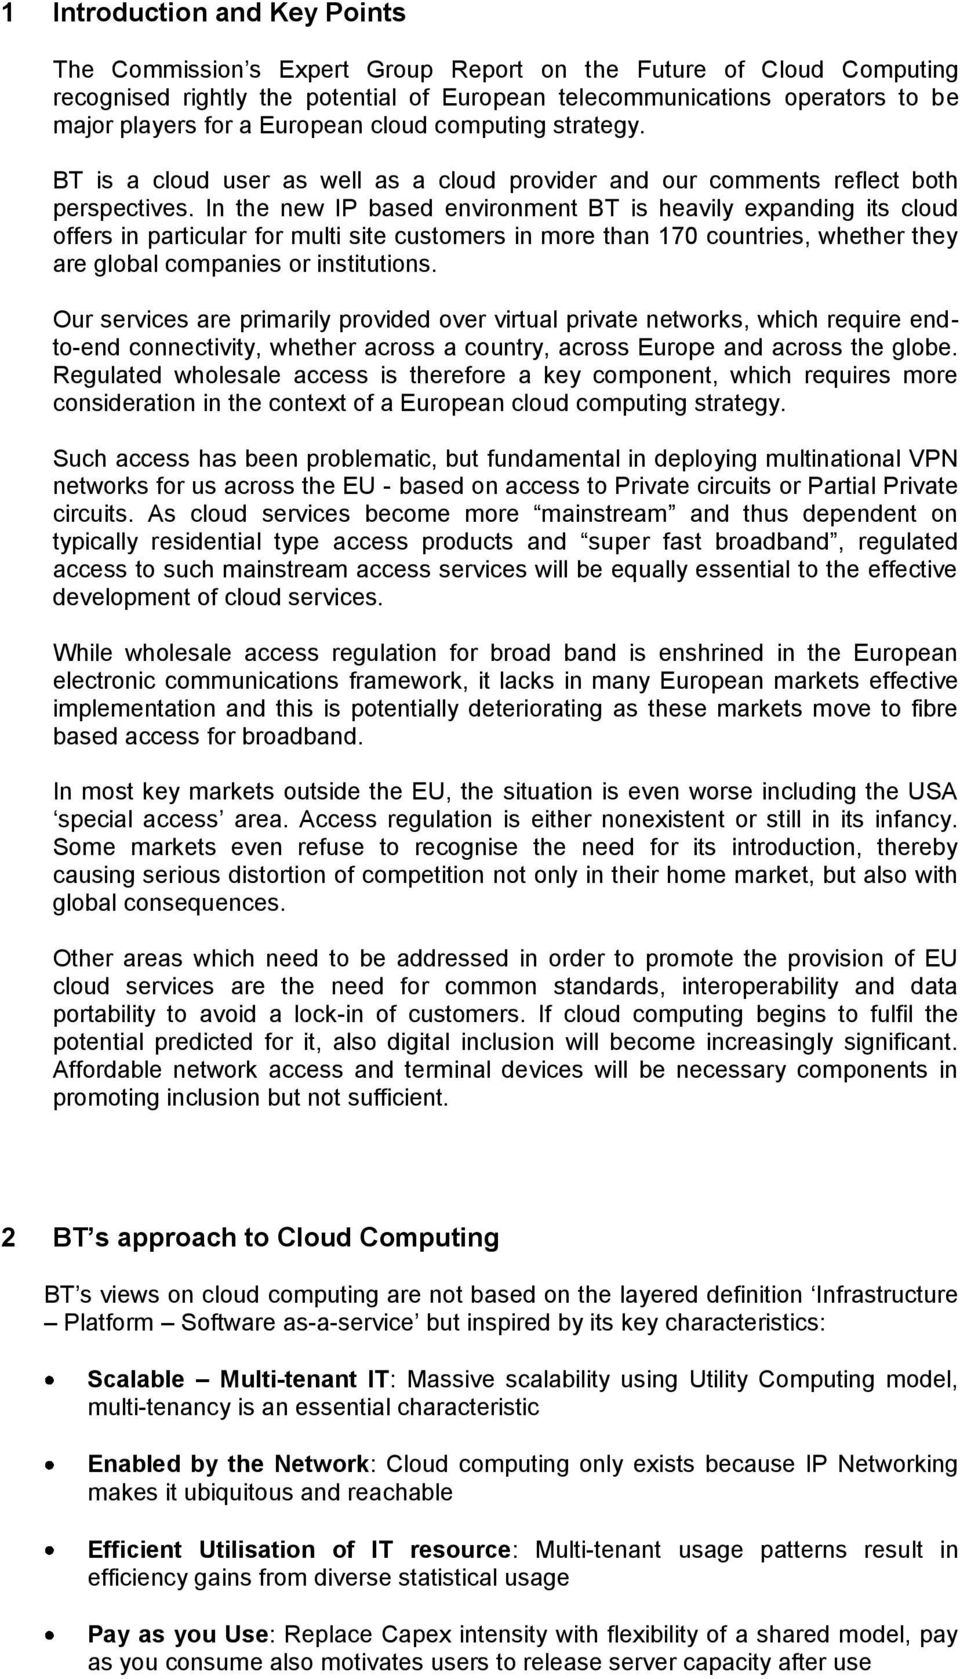 In the new IP based environment BT is heavily expanding its cloud offers in particular for multi site customers in more than 170 countries, whether they are global companies or institutions.